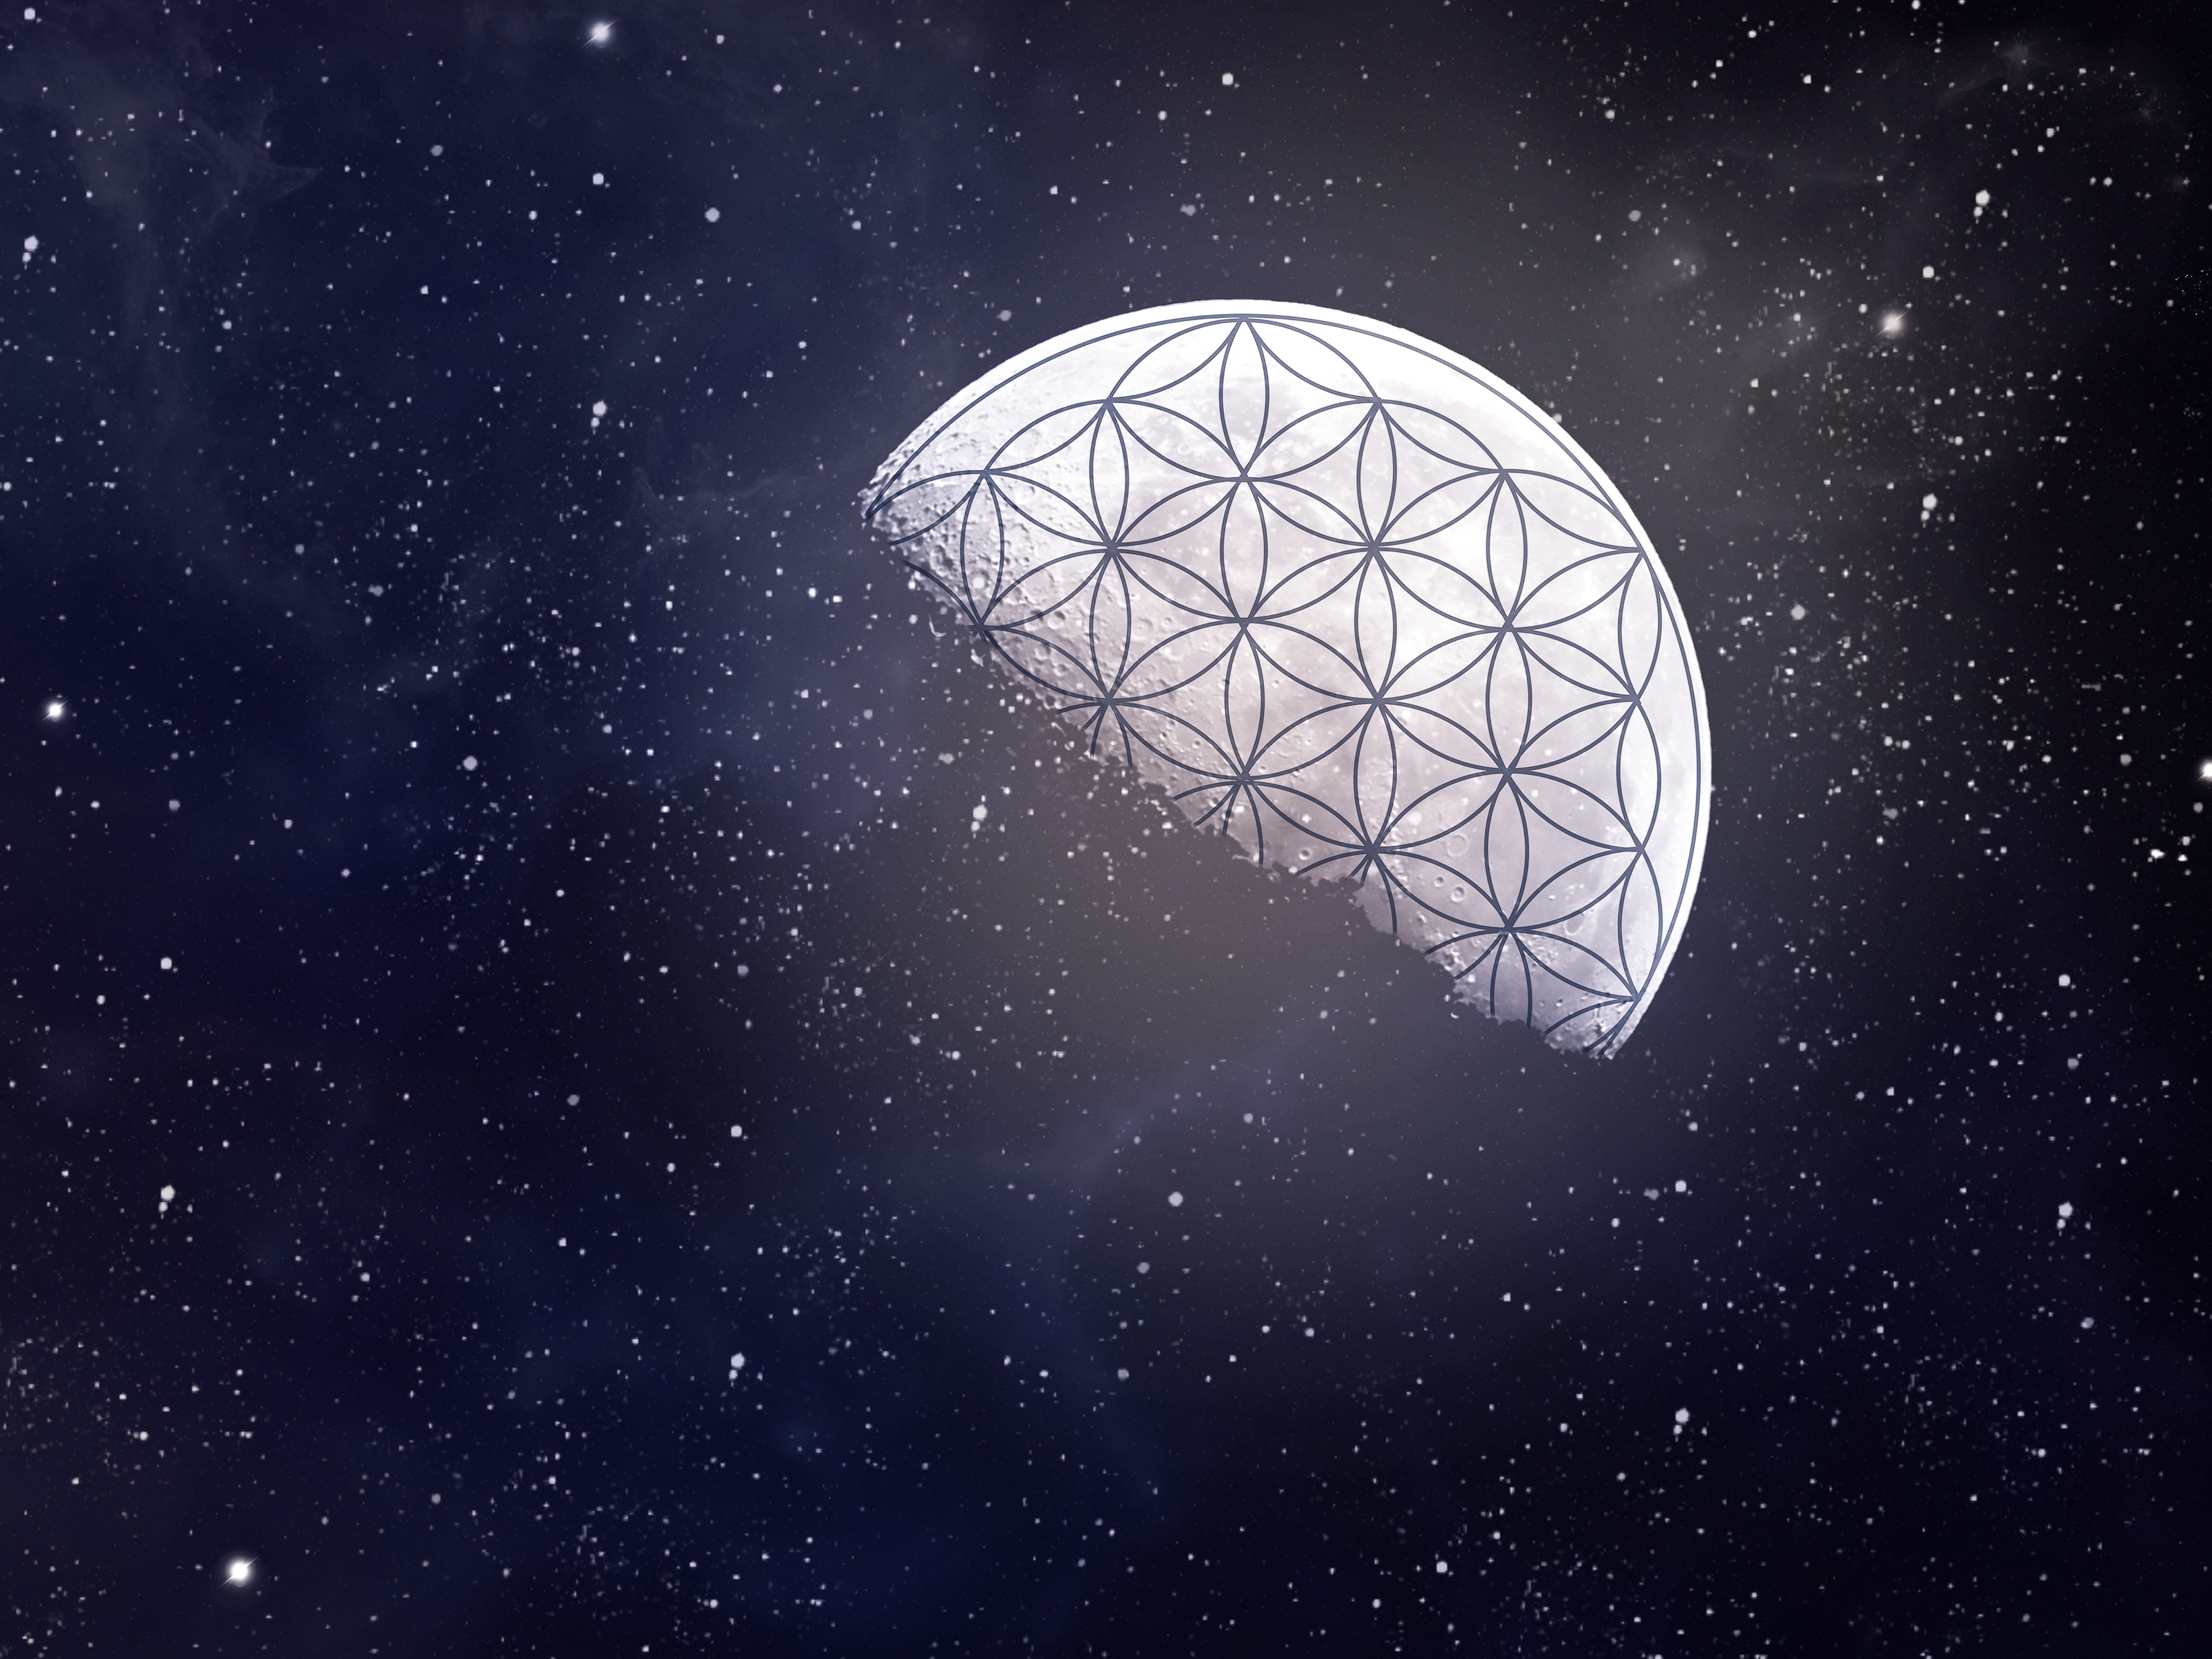 Flower of life with moon and night sky